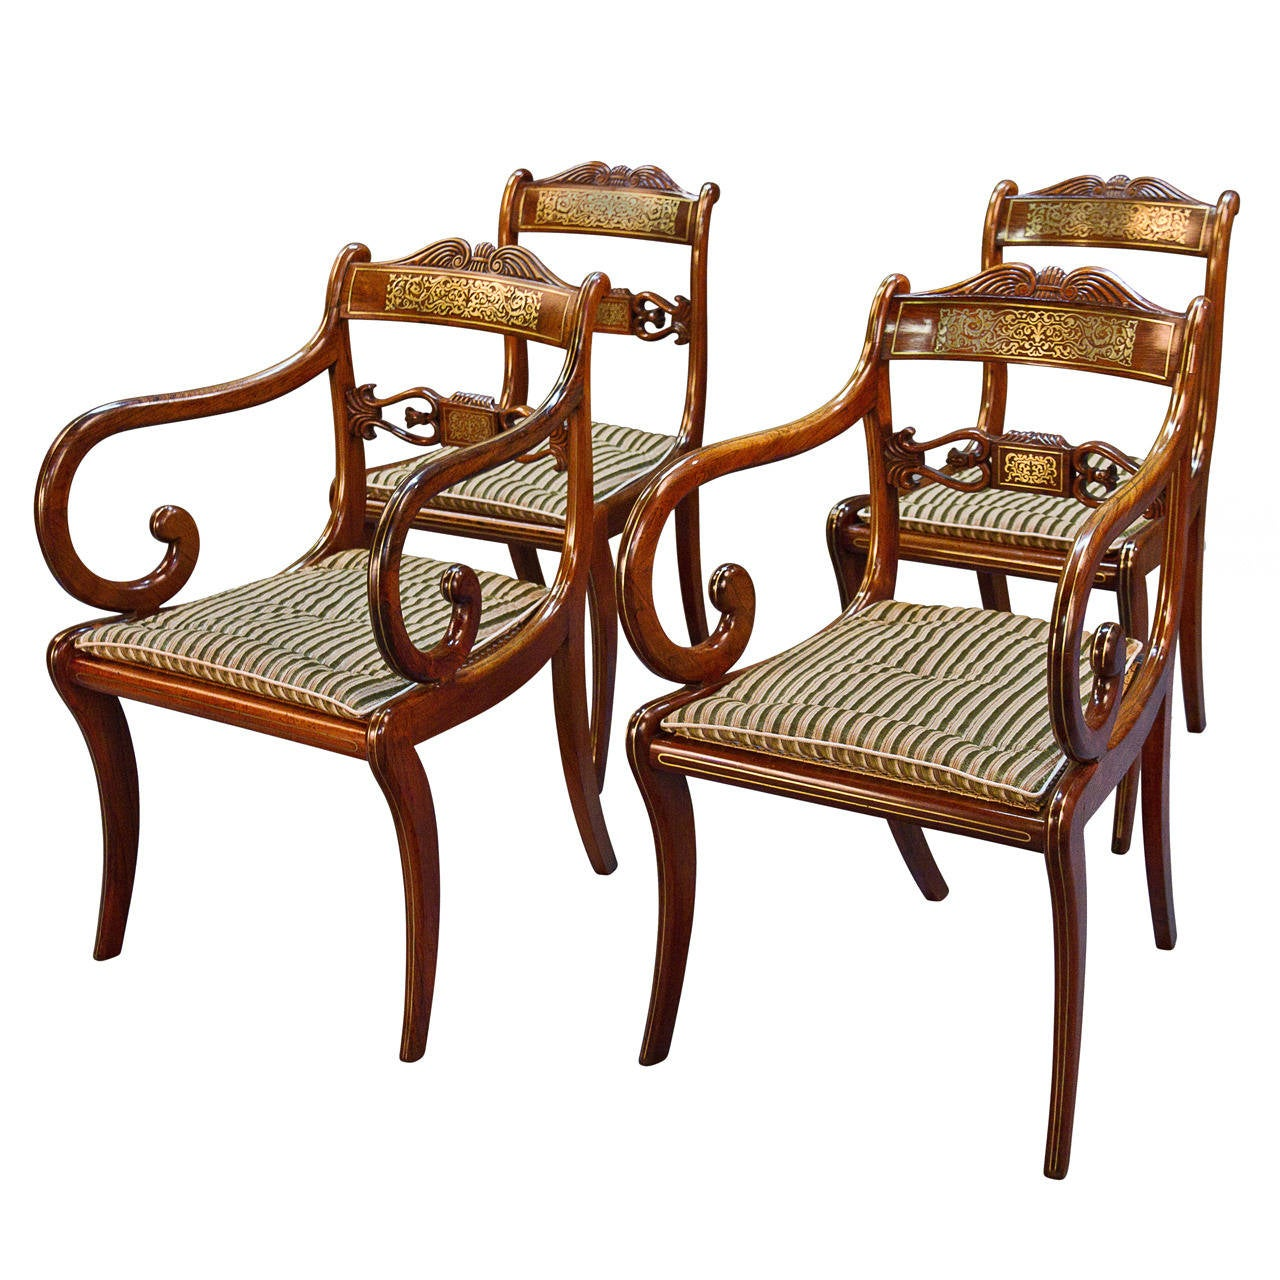 Very Rare Long Set of 16 George III Brass Inlaid Rosewood Dining Chairs 1